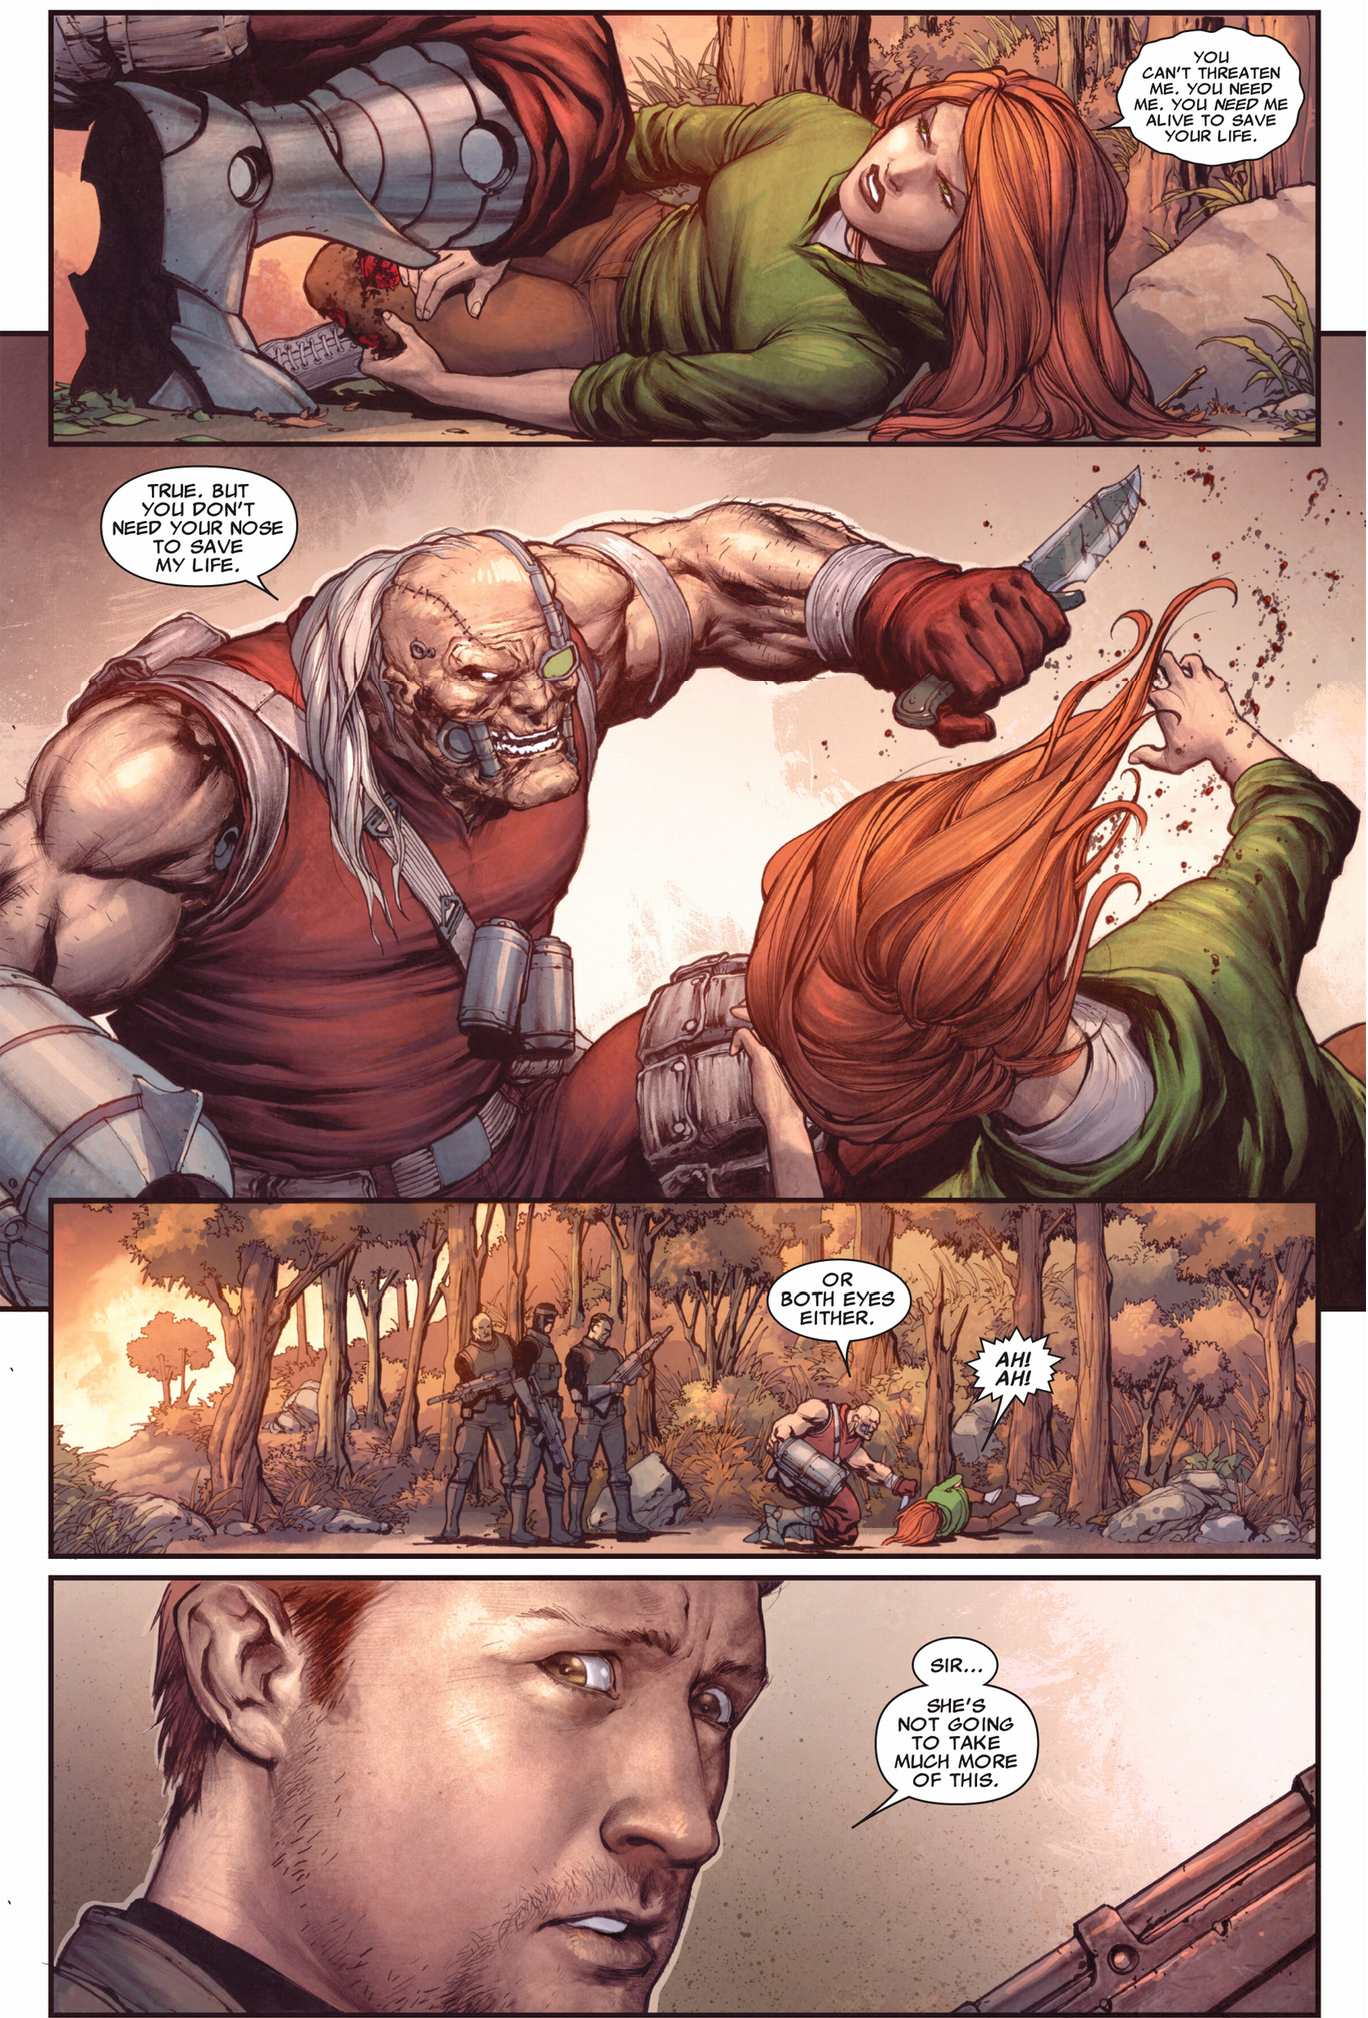 crimson commando tortures hope summers